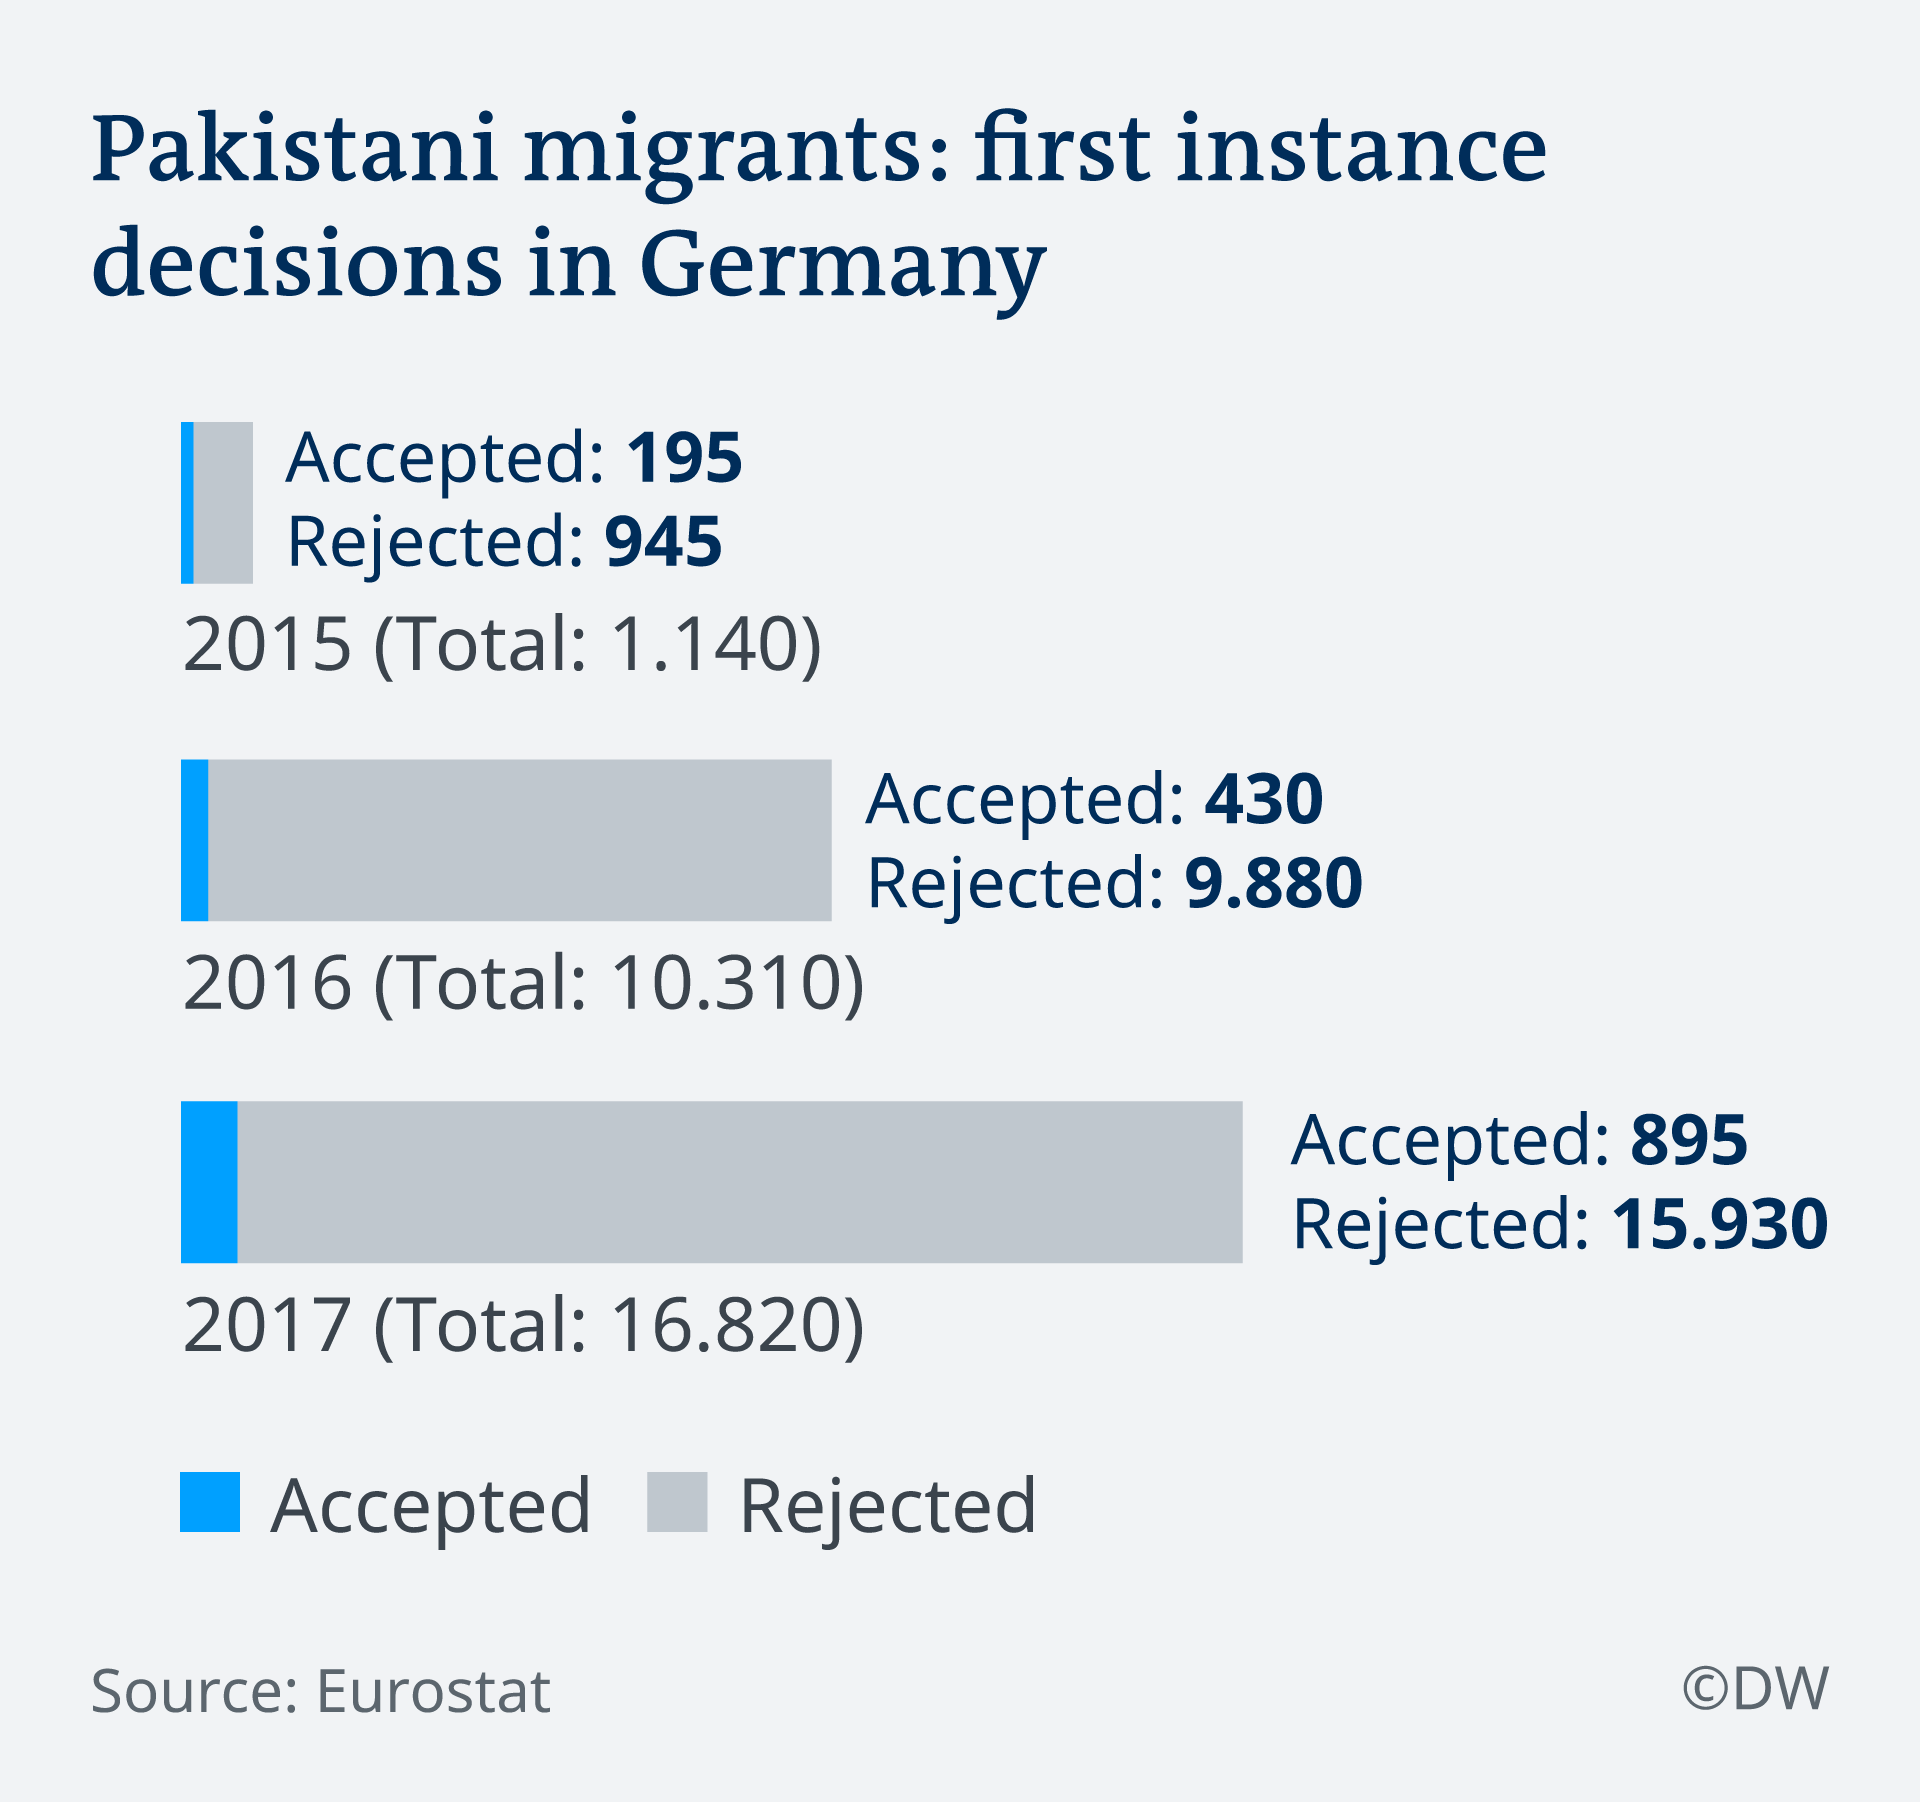 Why are Pakistanis so successful at finding jobs in Germany